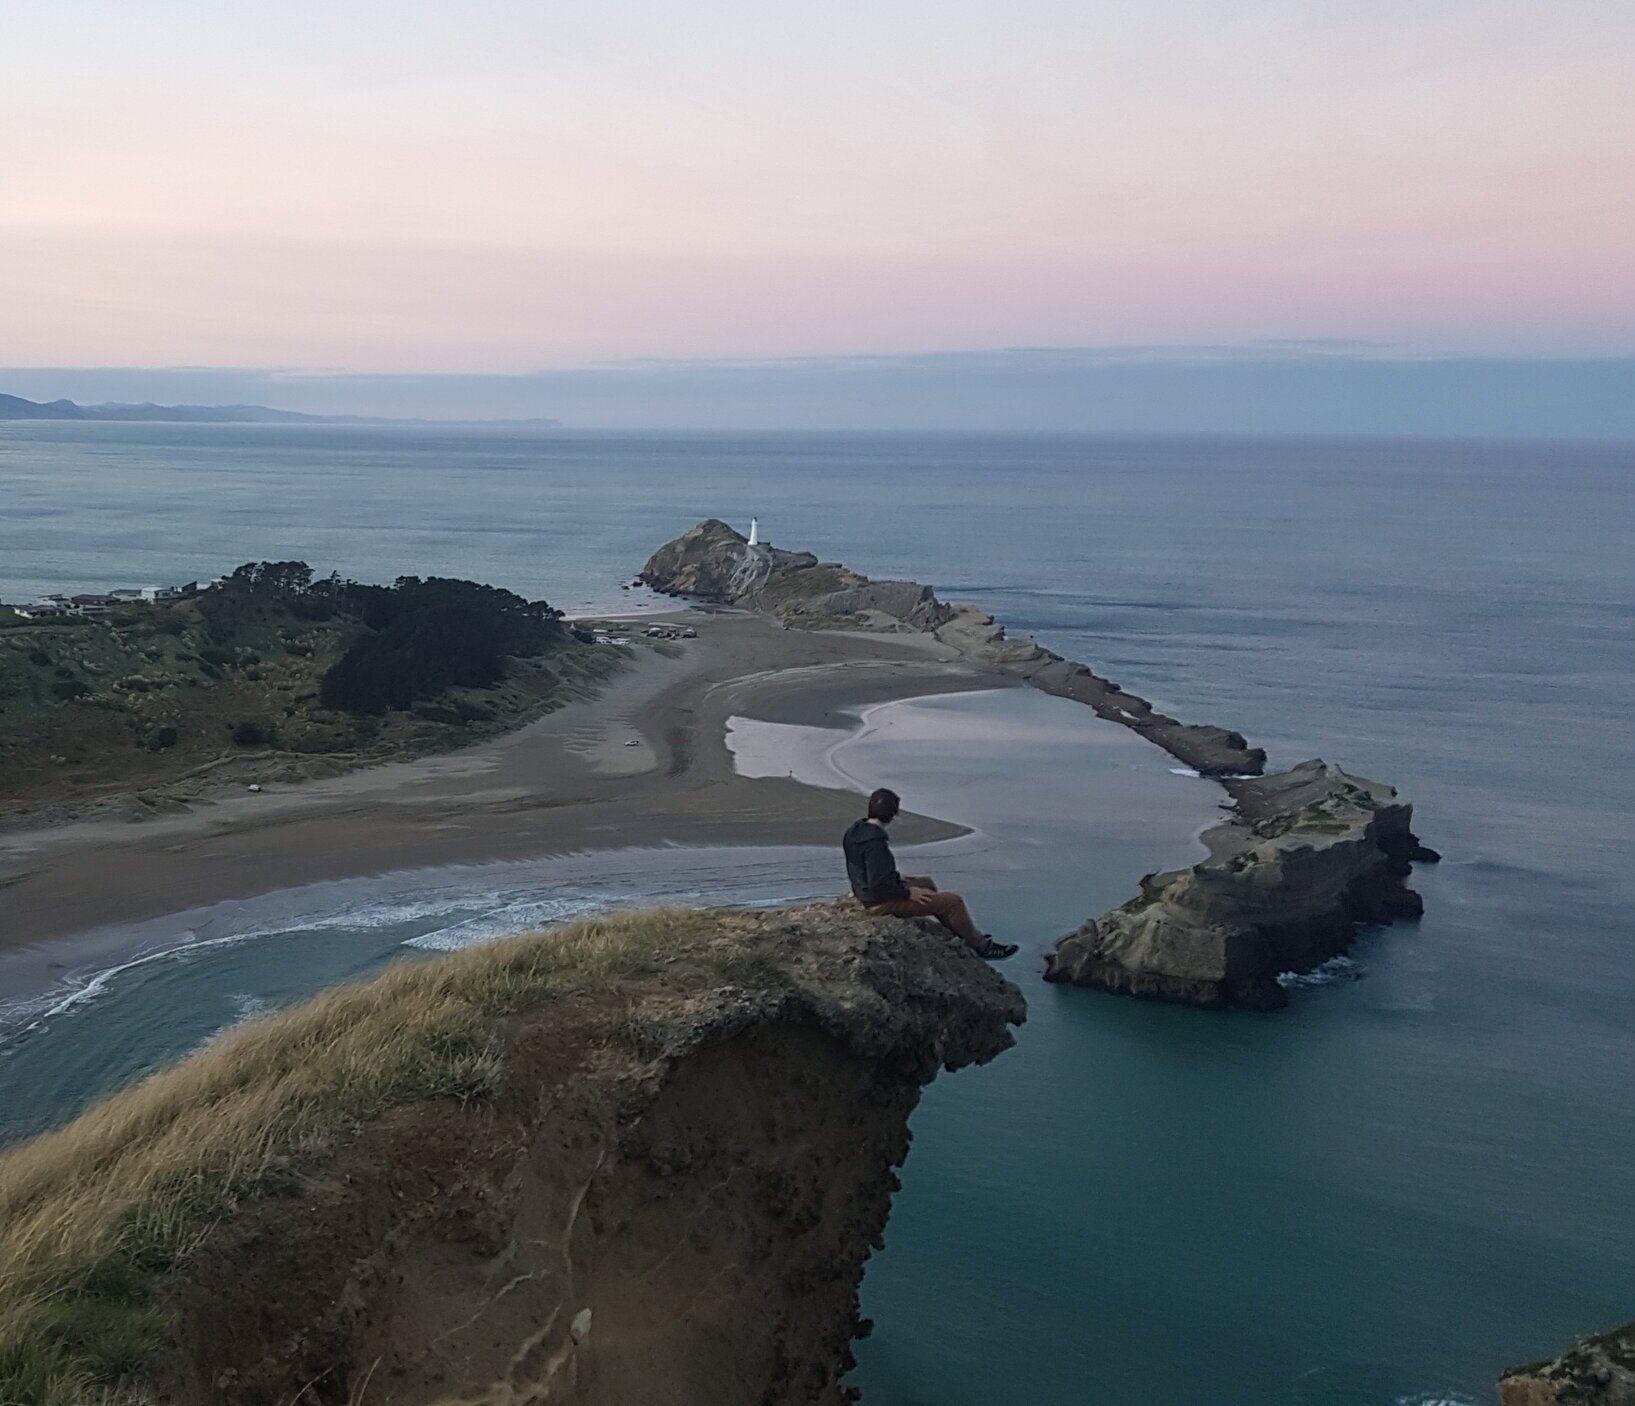 Scouting landscapes for inspiration - Castlepoint, New Zealand